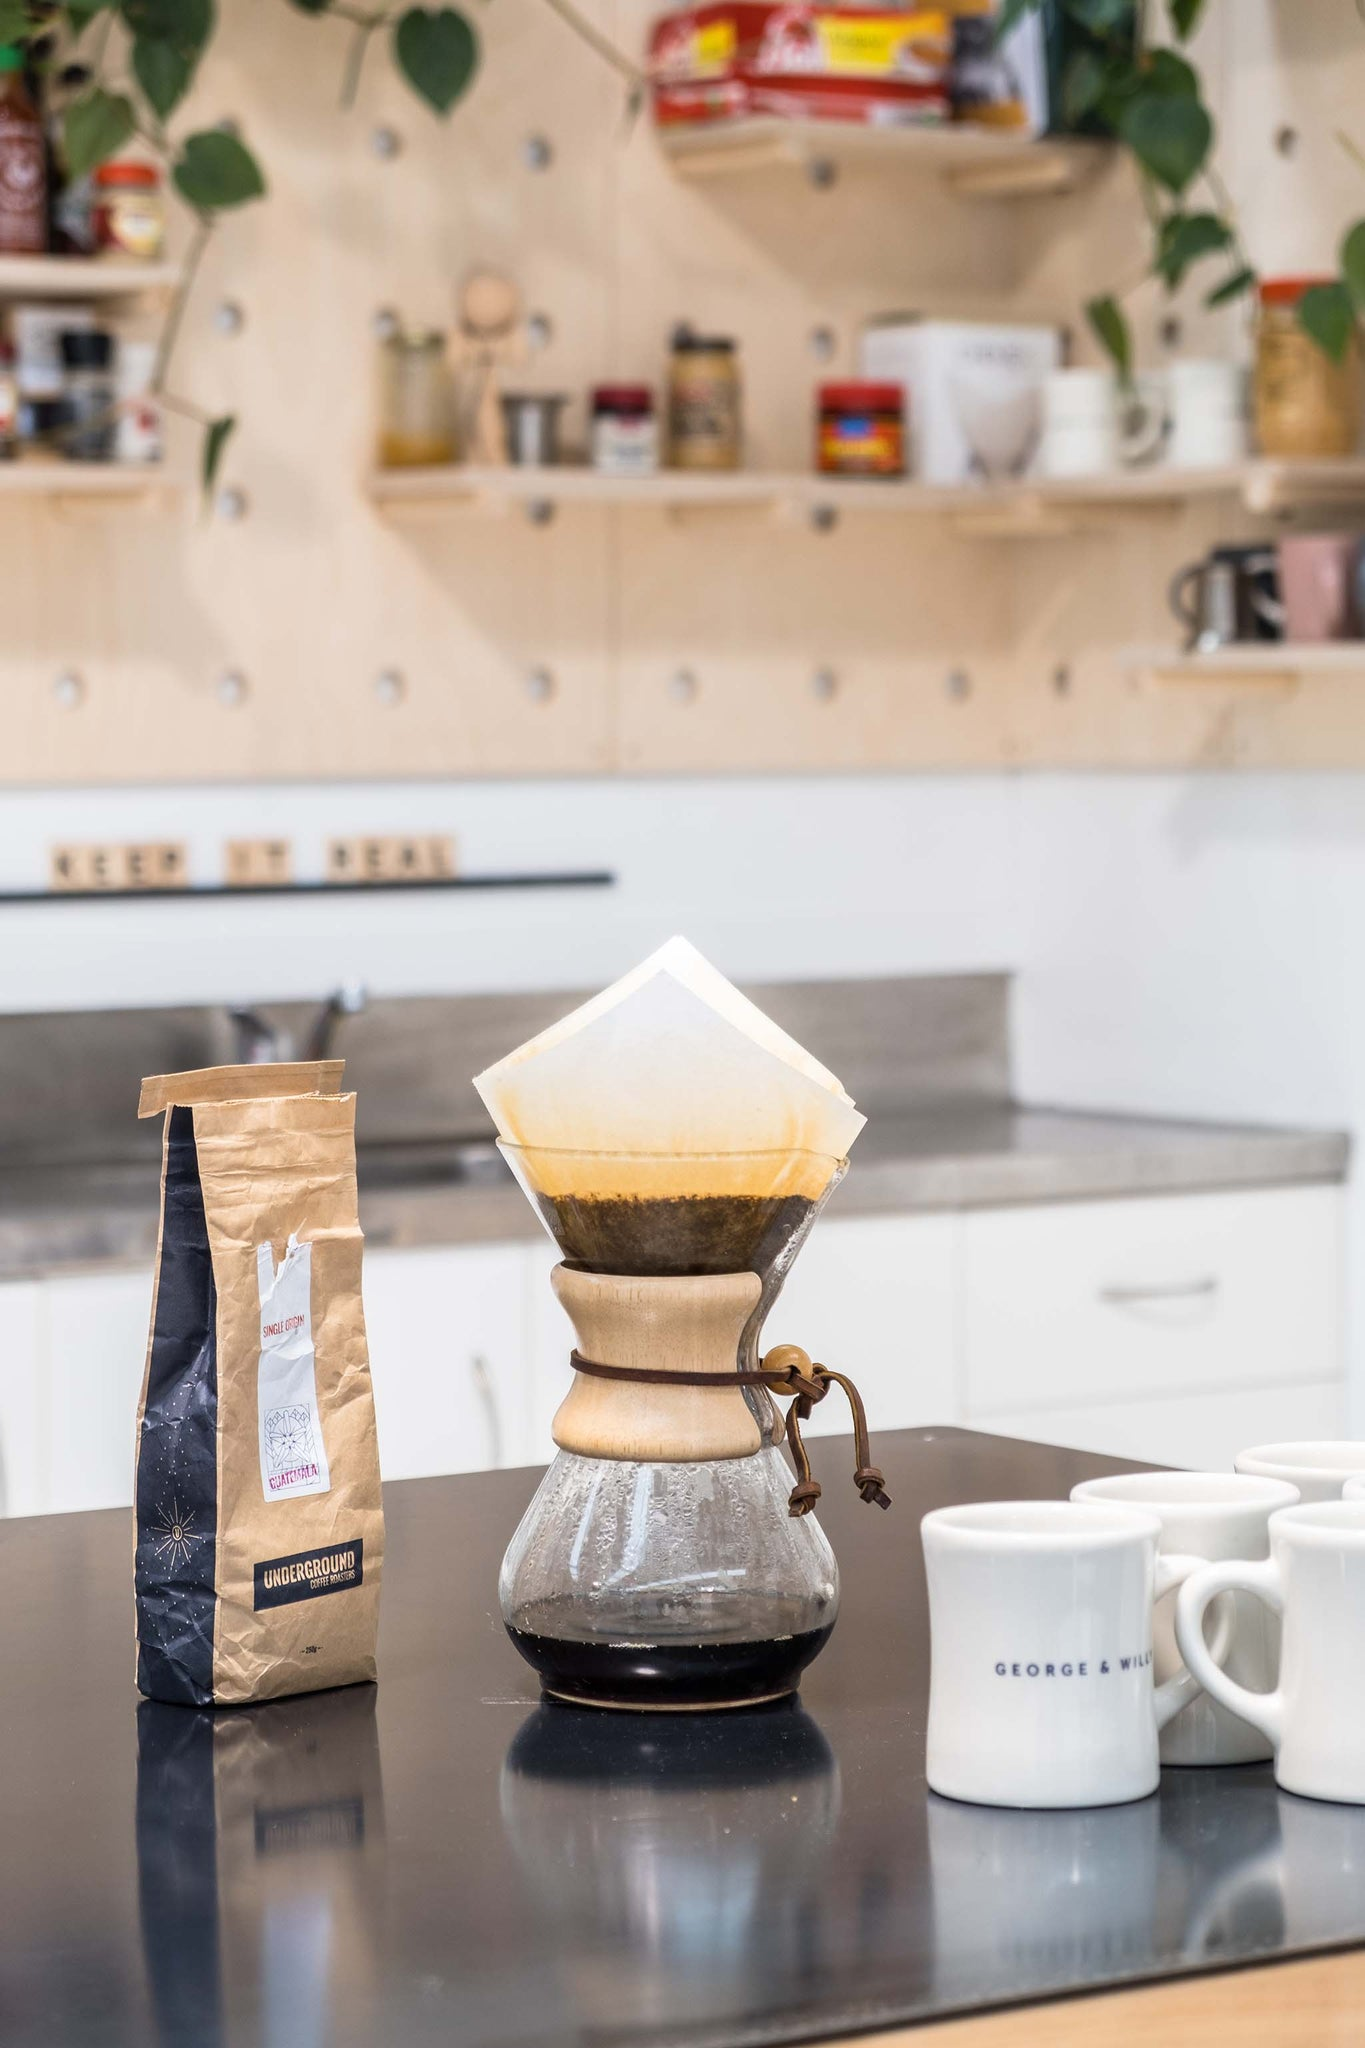 morning cup of coffee and chemex